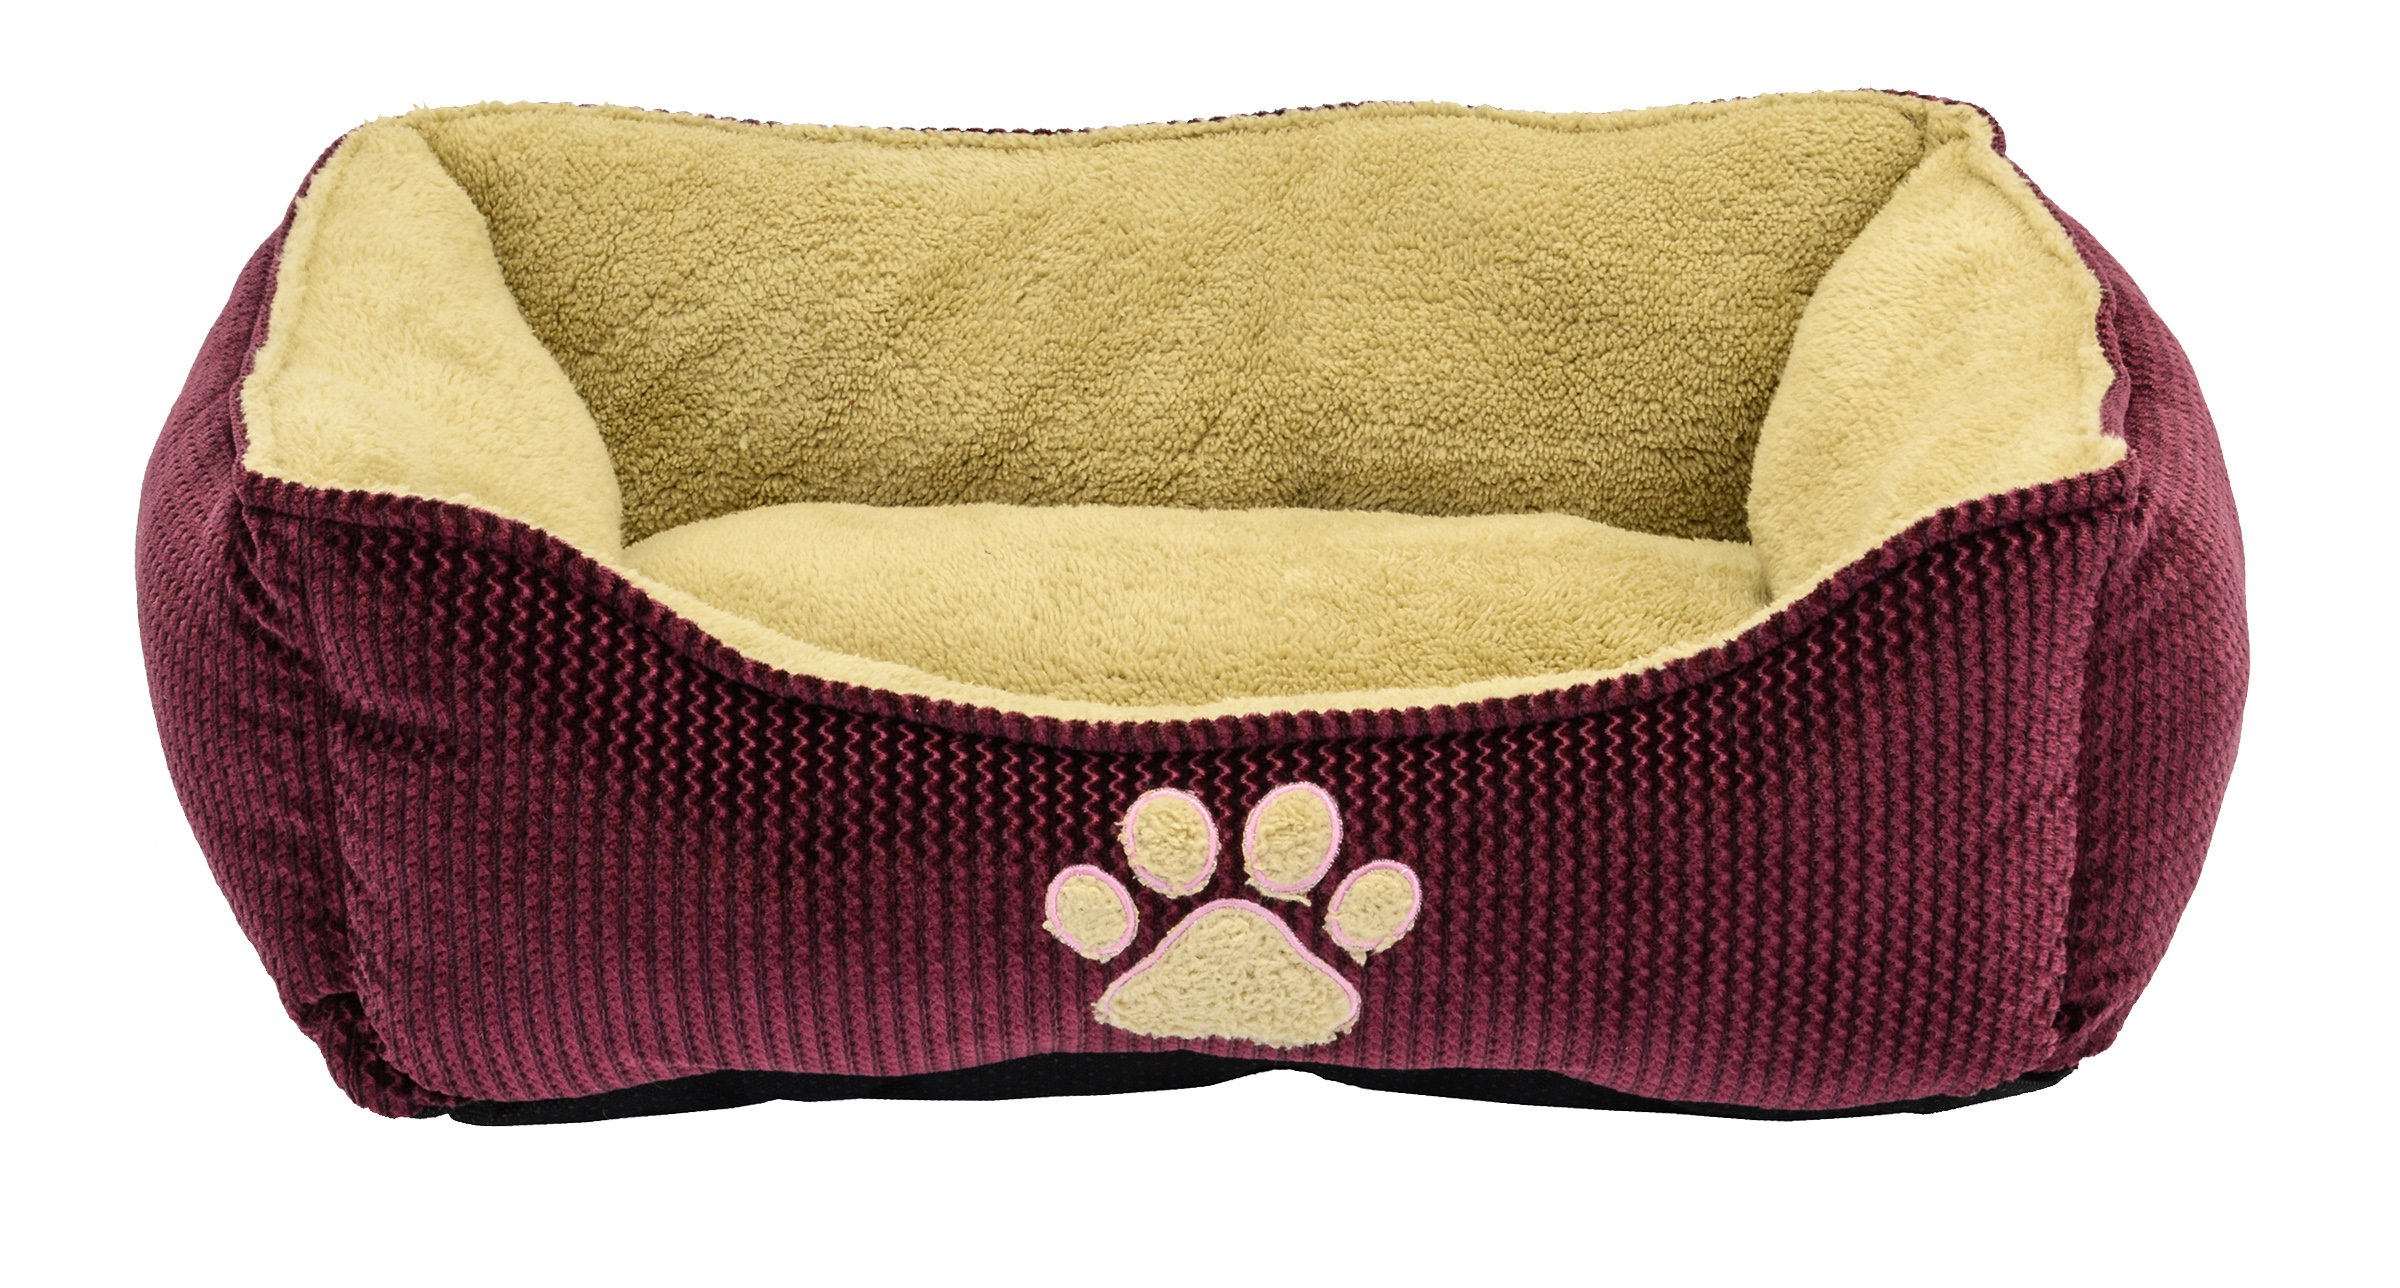 Dallas Manufacturing Co. 25'' Textured Box Dog Bed Burgundy